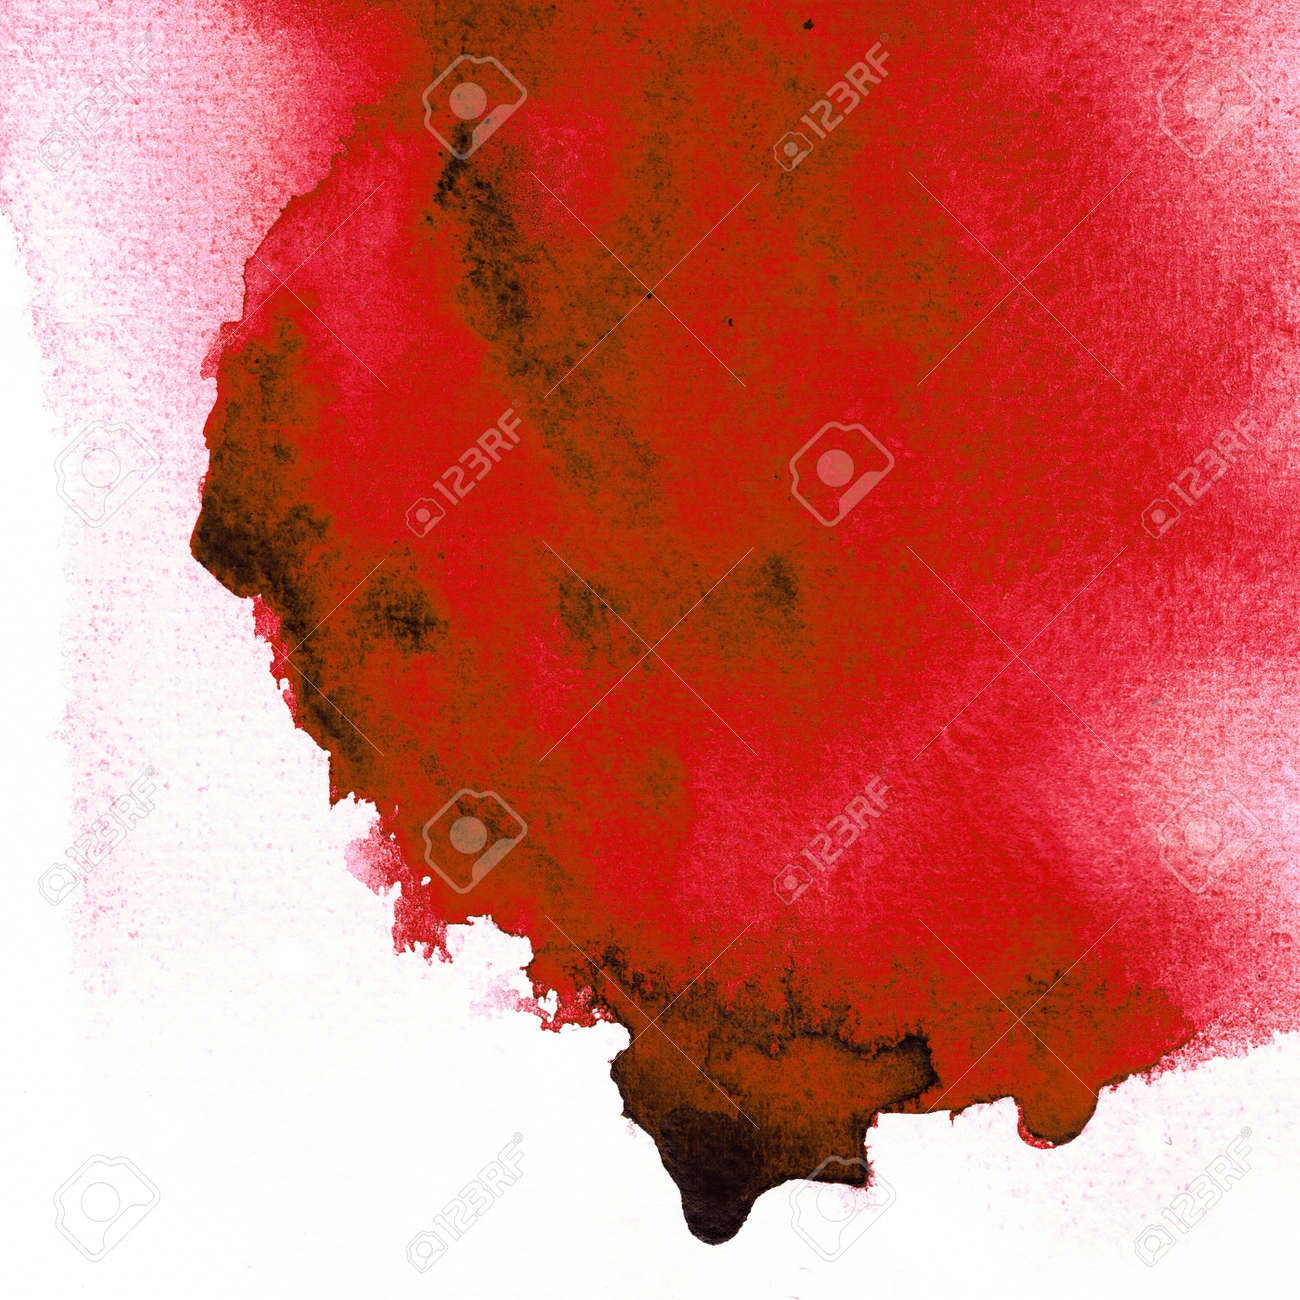 Red Wet on wet abstract watercolor Stock Photo - 14882279